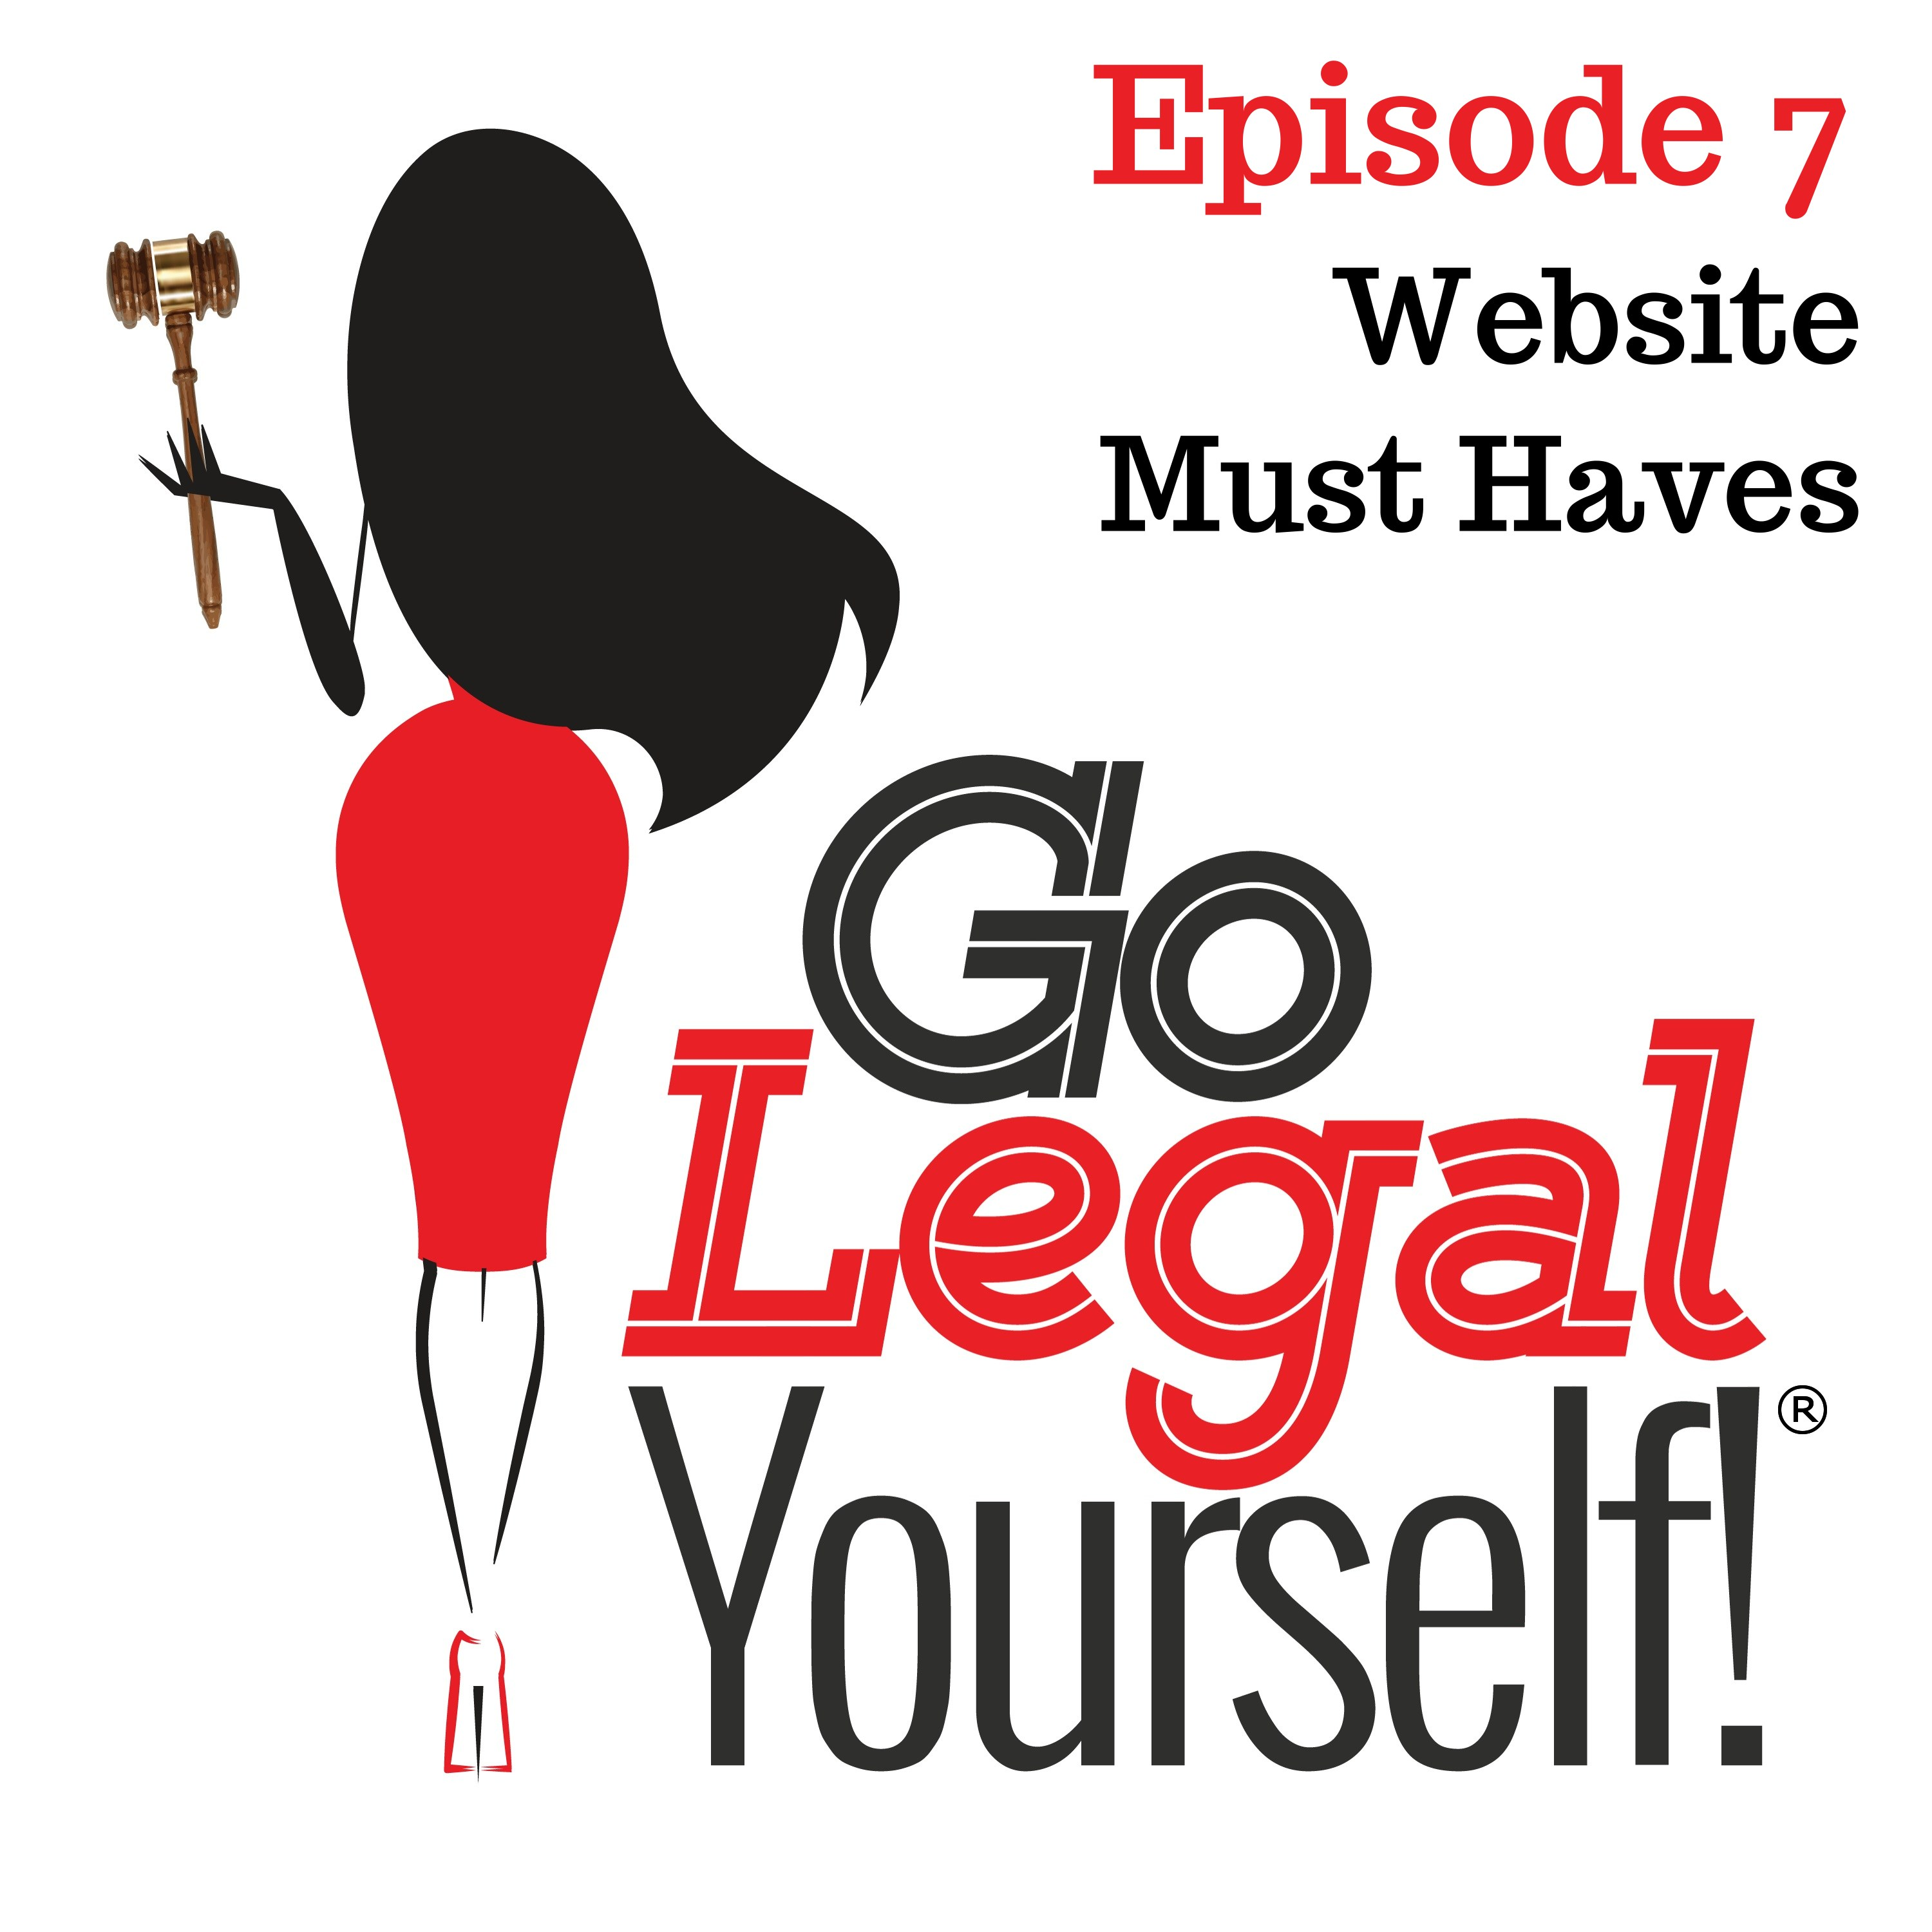 Ep. 7 Website Must Haves